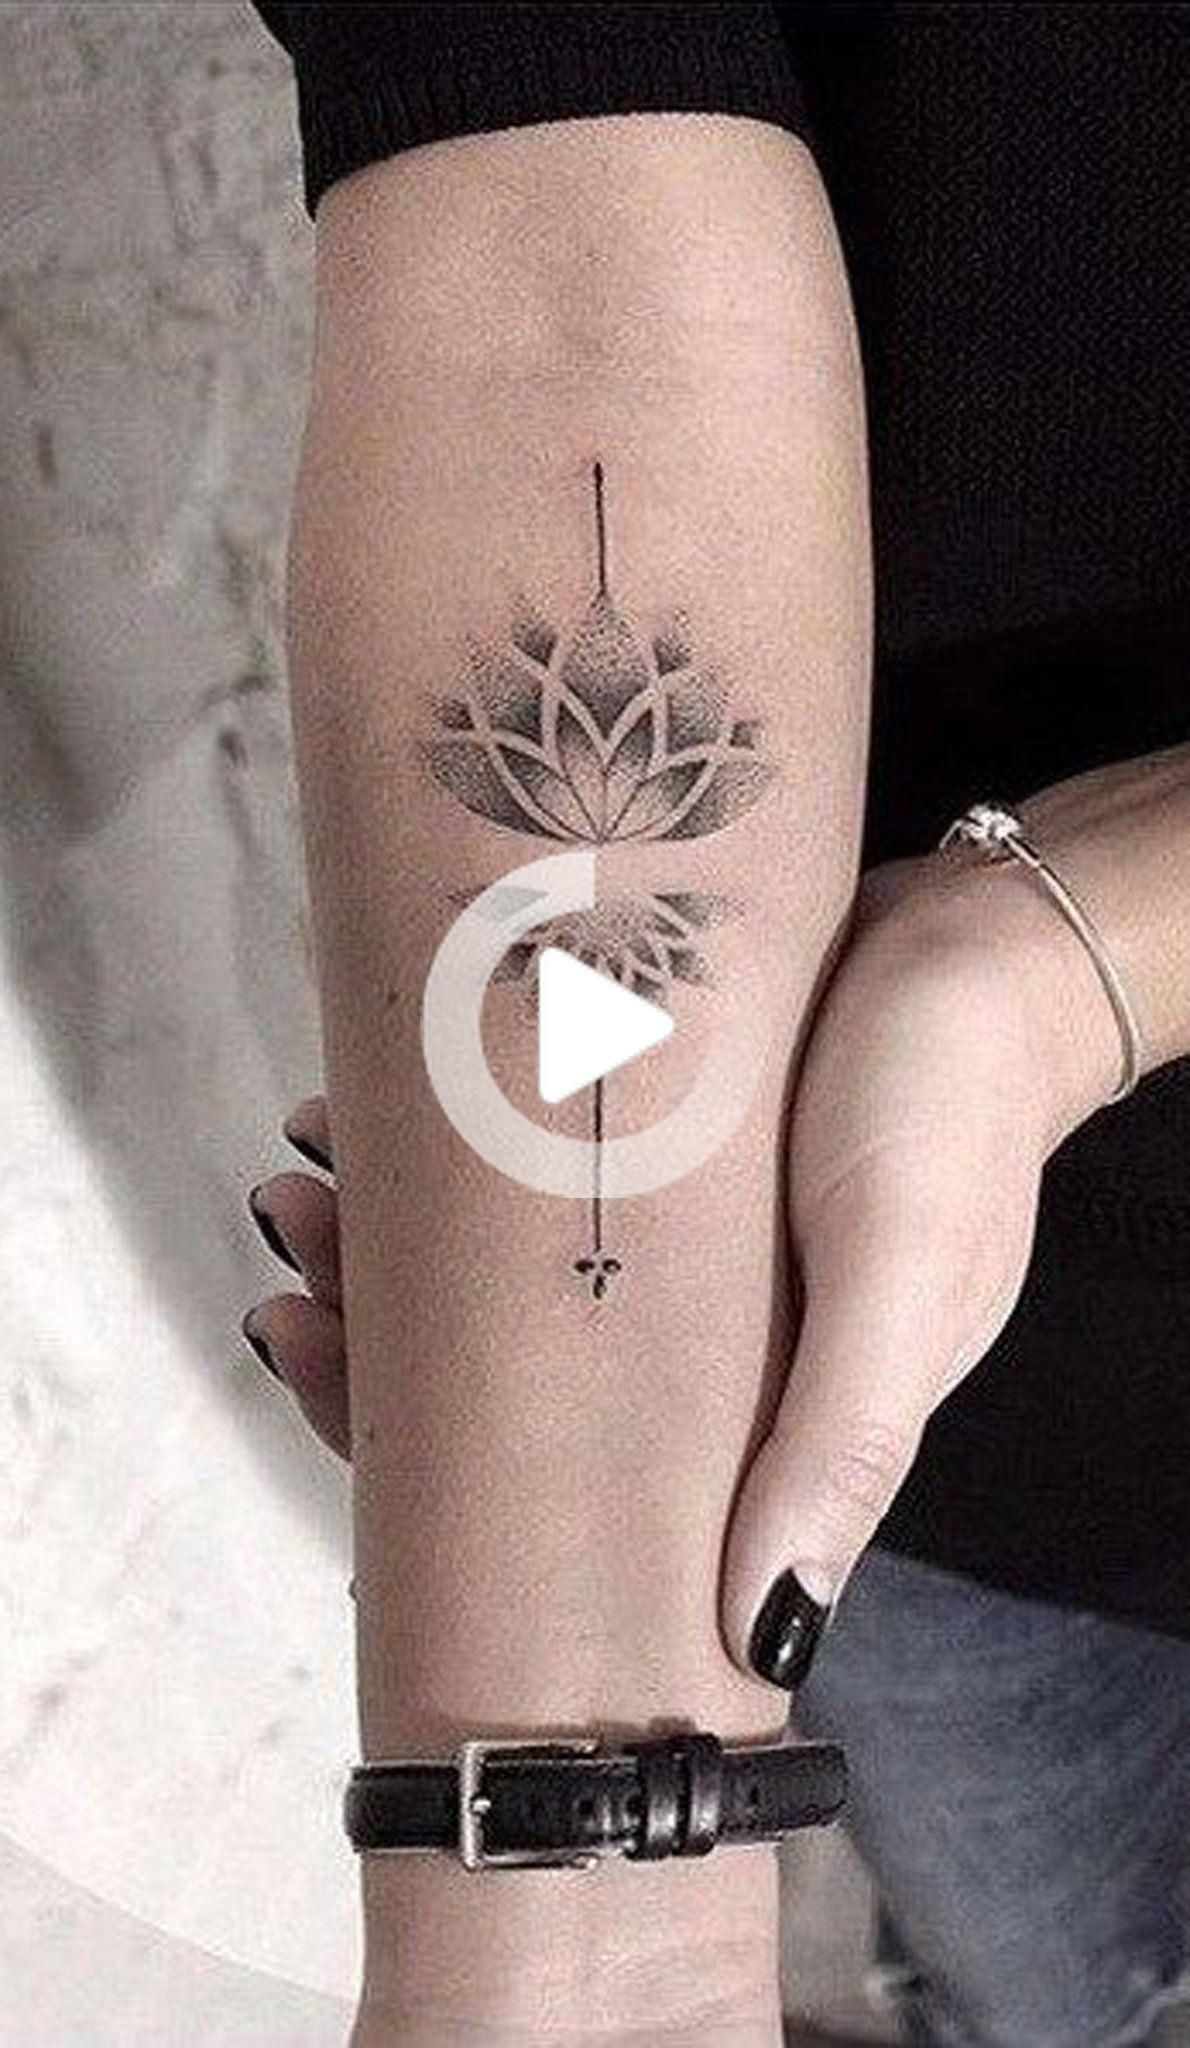 Lotus Temporary Tattoo Bohemian Temporary Tattoo Boho Temporary Tattoo Lotus Tattoo Lotus Fake Tattoo Boho Gift Idea Lotus Tatuajes Tatuajes Discretos Tatuajes Delicados